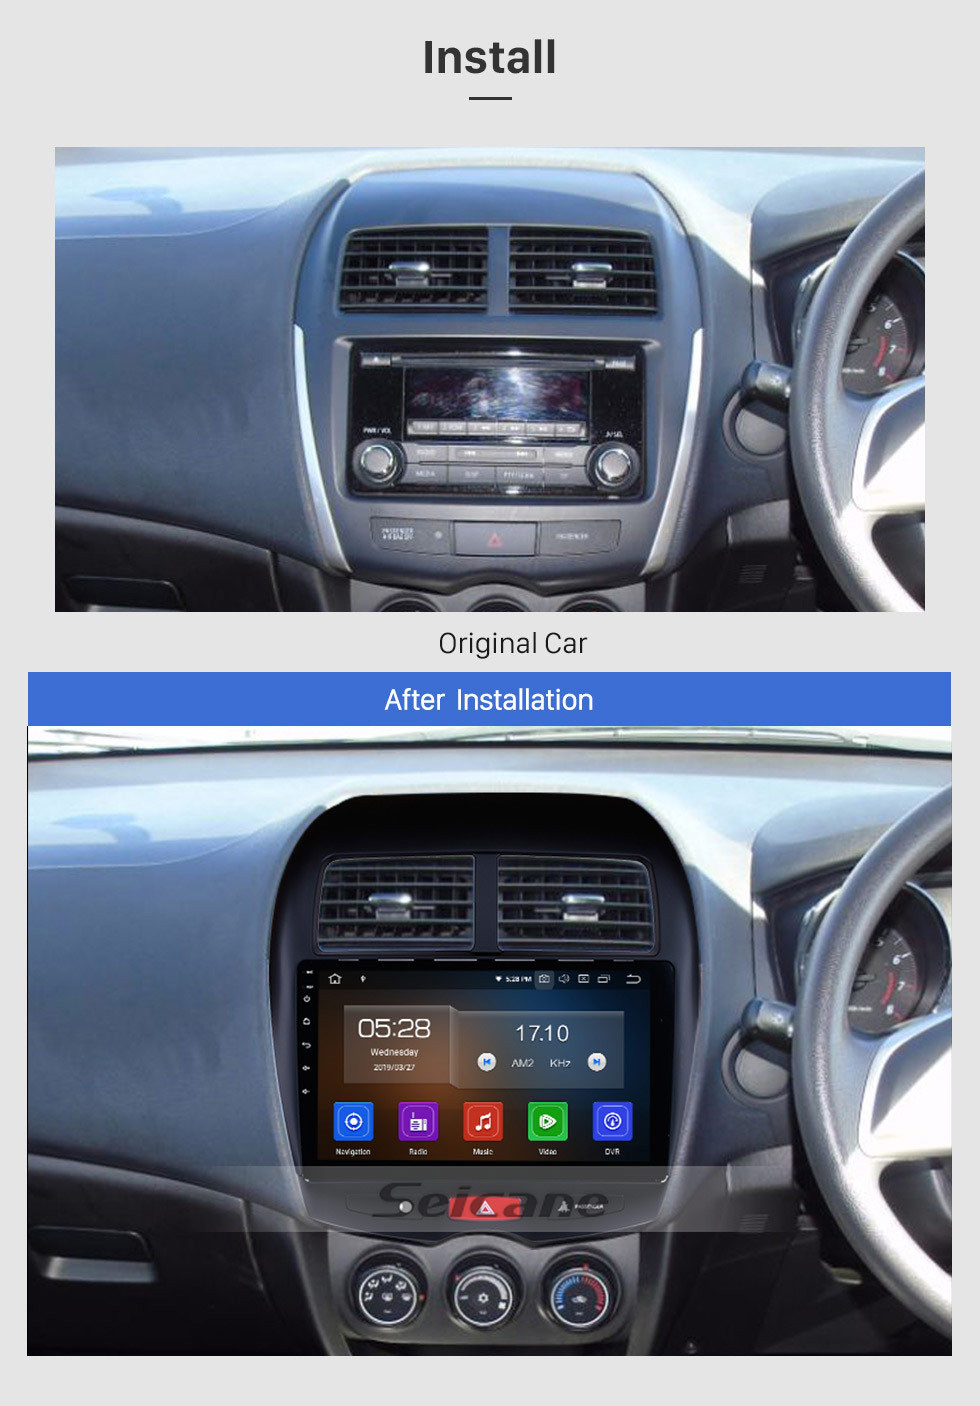 Seicane Android 9.0 GPS Radio 10.1 Inch HD Touchscreen Head Unit For 2010-2015 Mitsubishi ASX Peugeot 4008 GPS Navigation System Bluetooth Phone WIFI Support Mirror Link DVR Steering Wheel Control